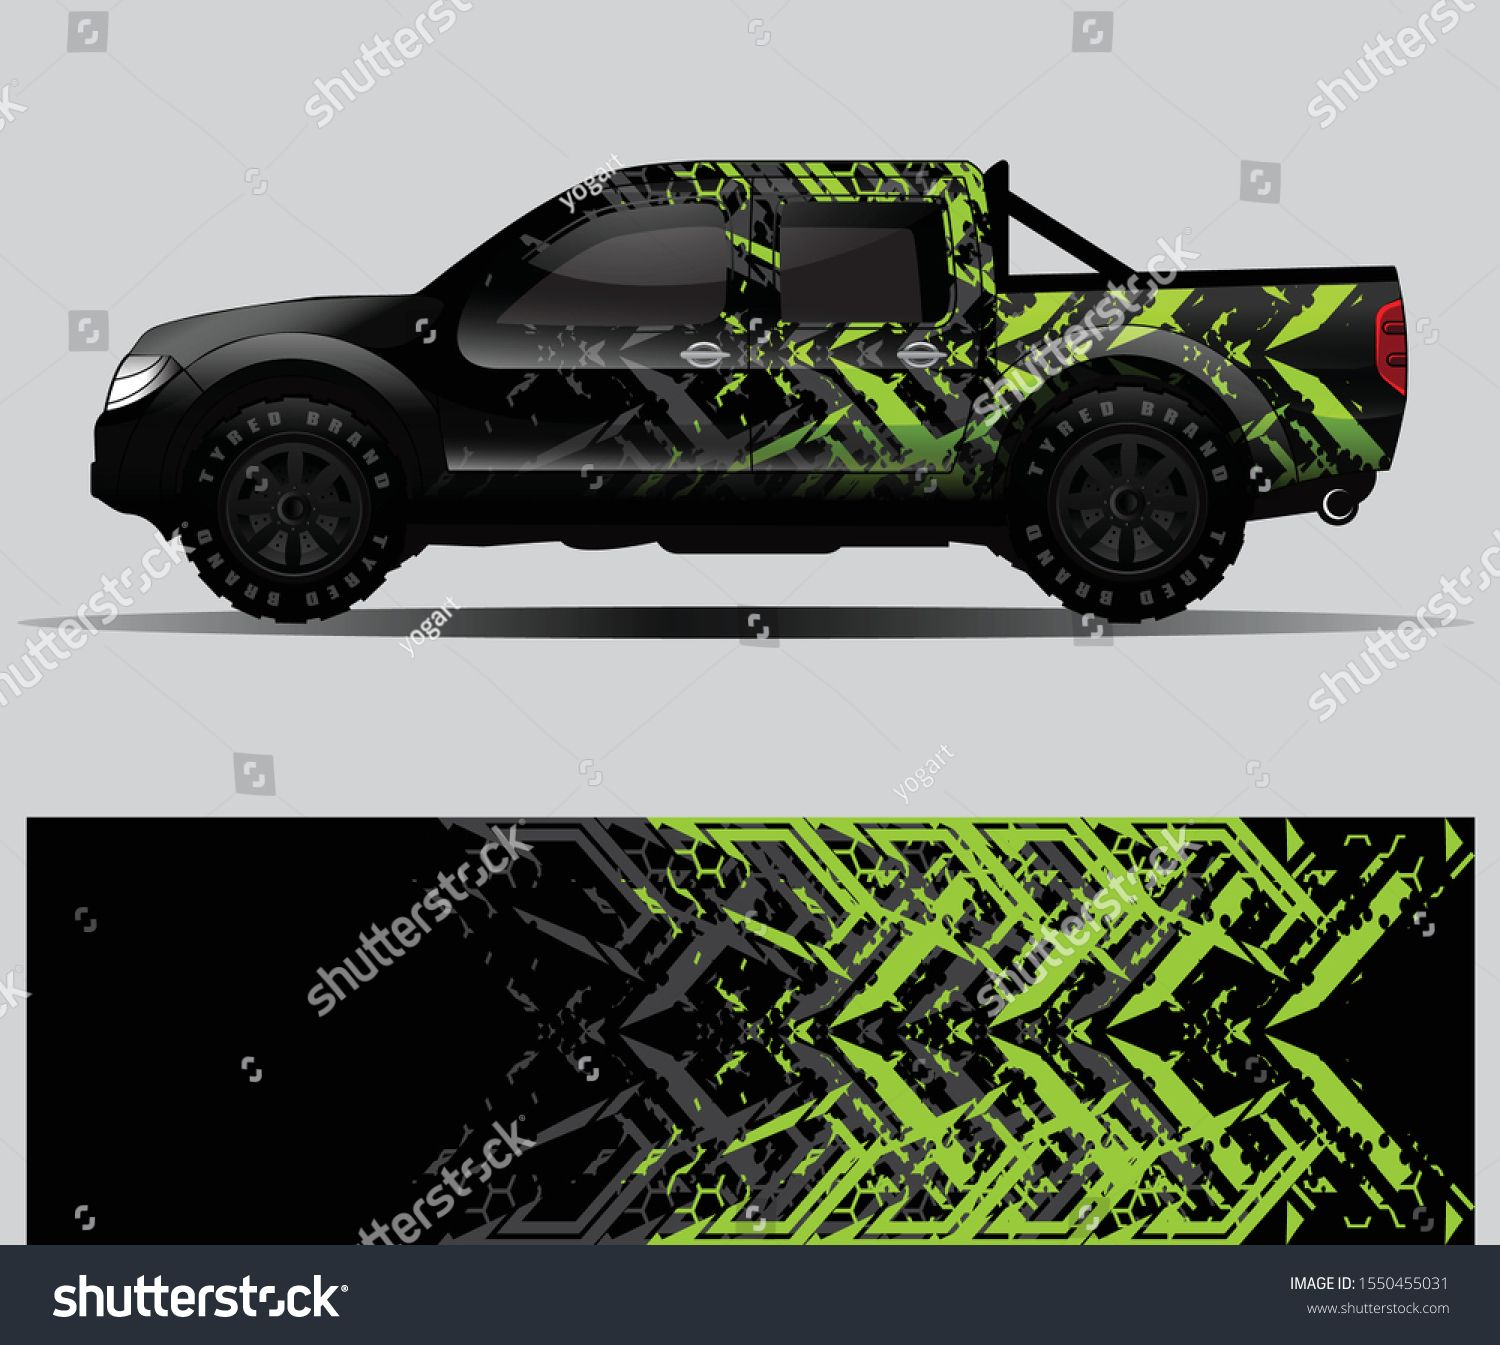 Truck Decal Graphic Wrap Vector Abstract Stock Vector Royalty Free 1550455031 Mobil Balap Mobil Pembalap